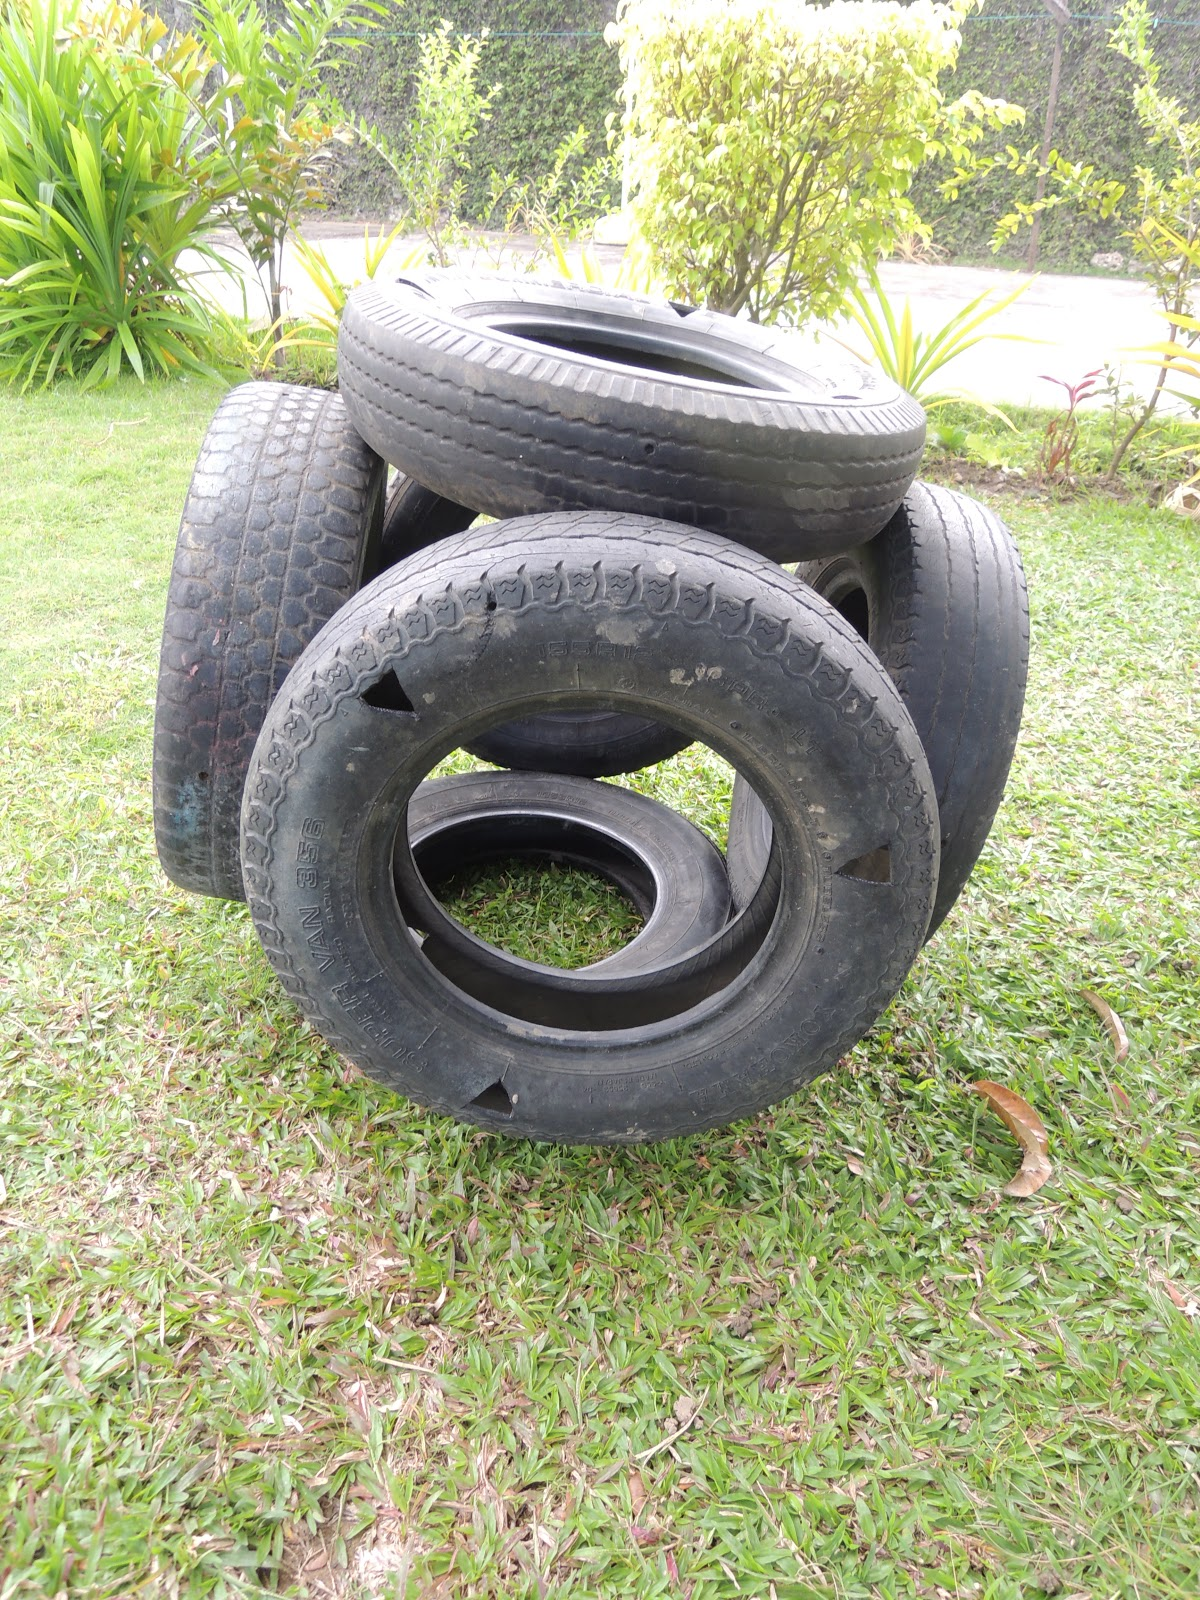 Recycling Rubber 3 The Tire Play Garden Daily Dose Of Art